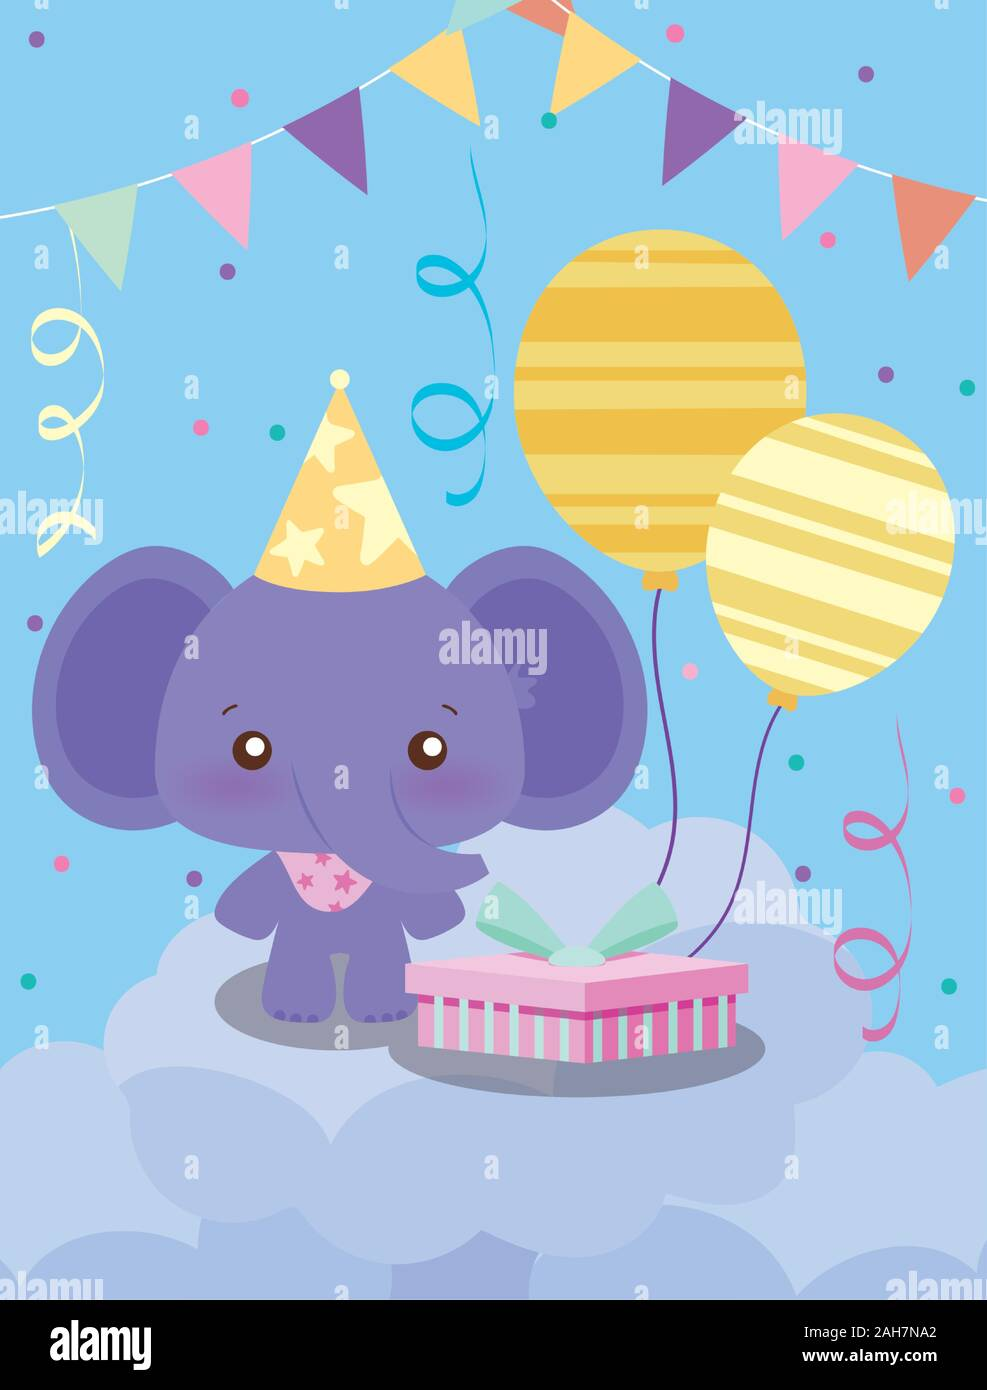 Elephant Cartoon Design Happy Birthday Card Celebration